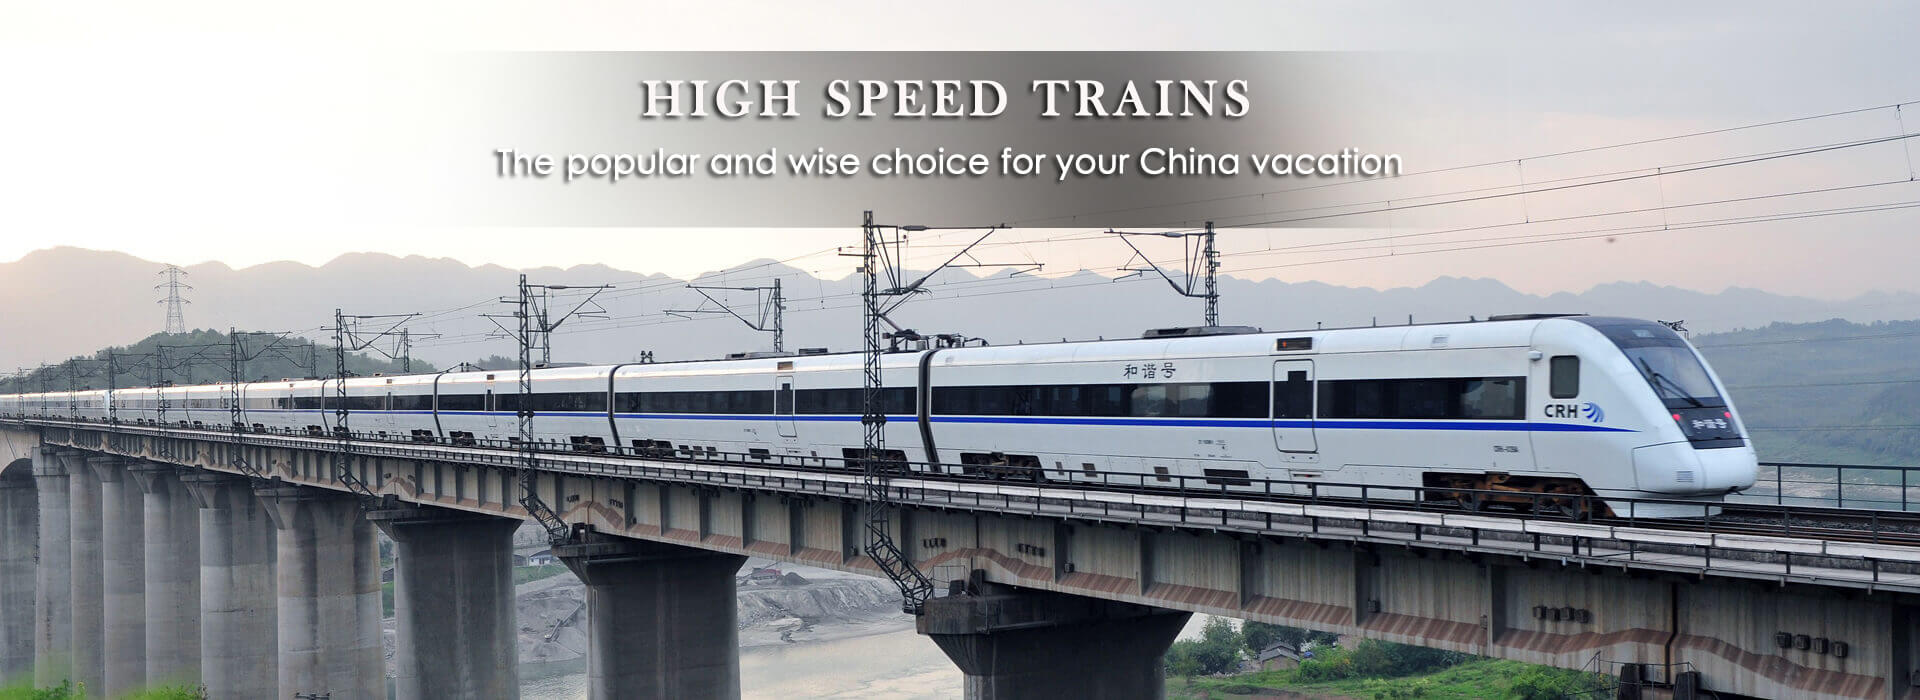 Top 10 Most Popular China High Speed Train Routes Among Travelers